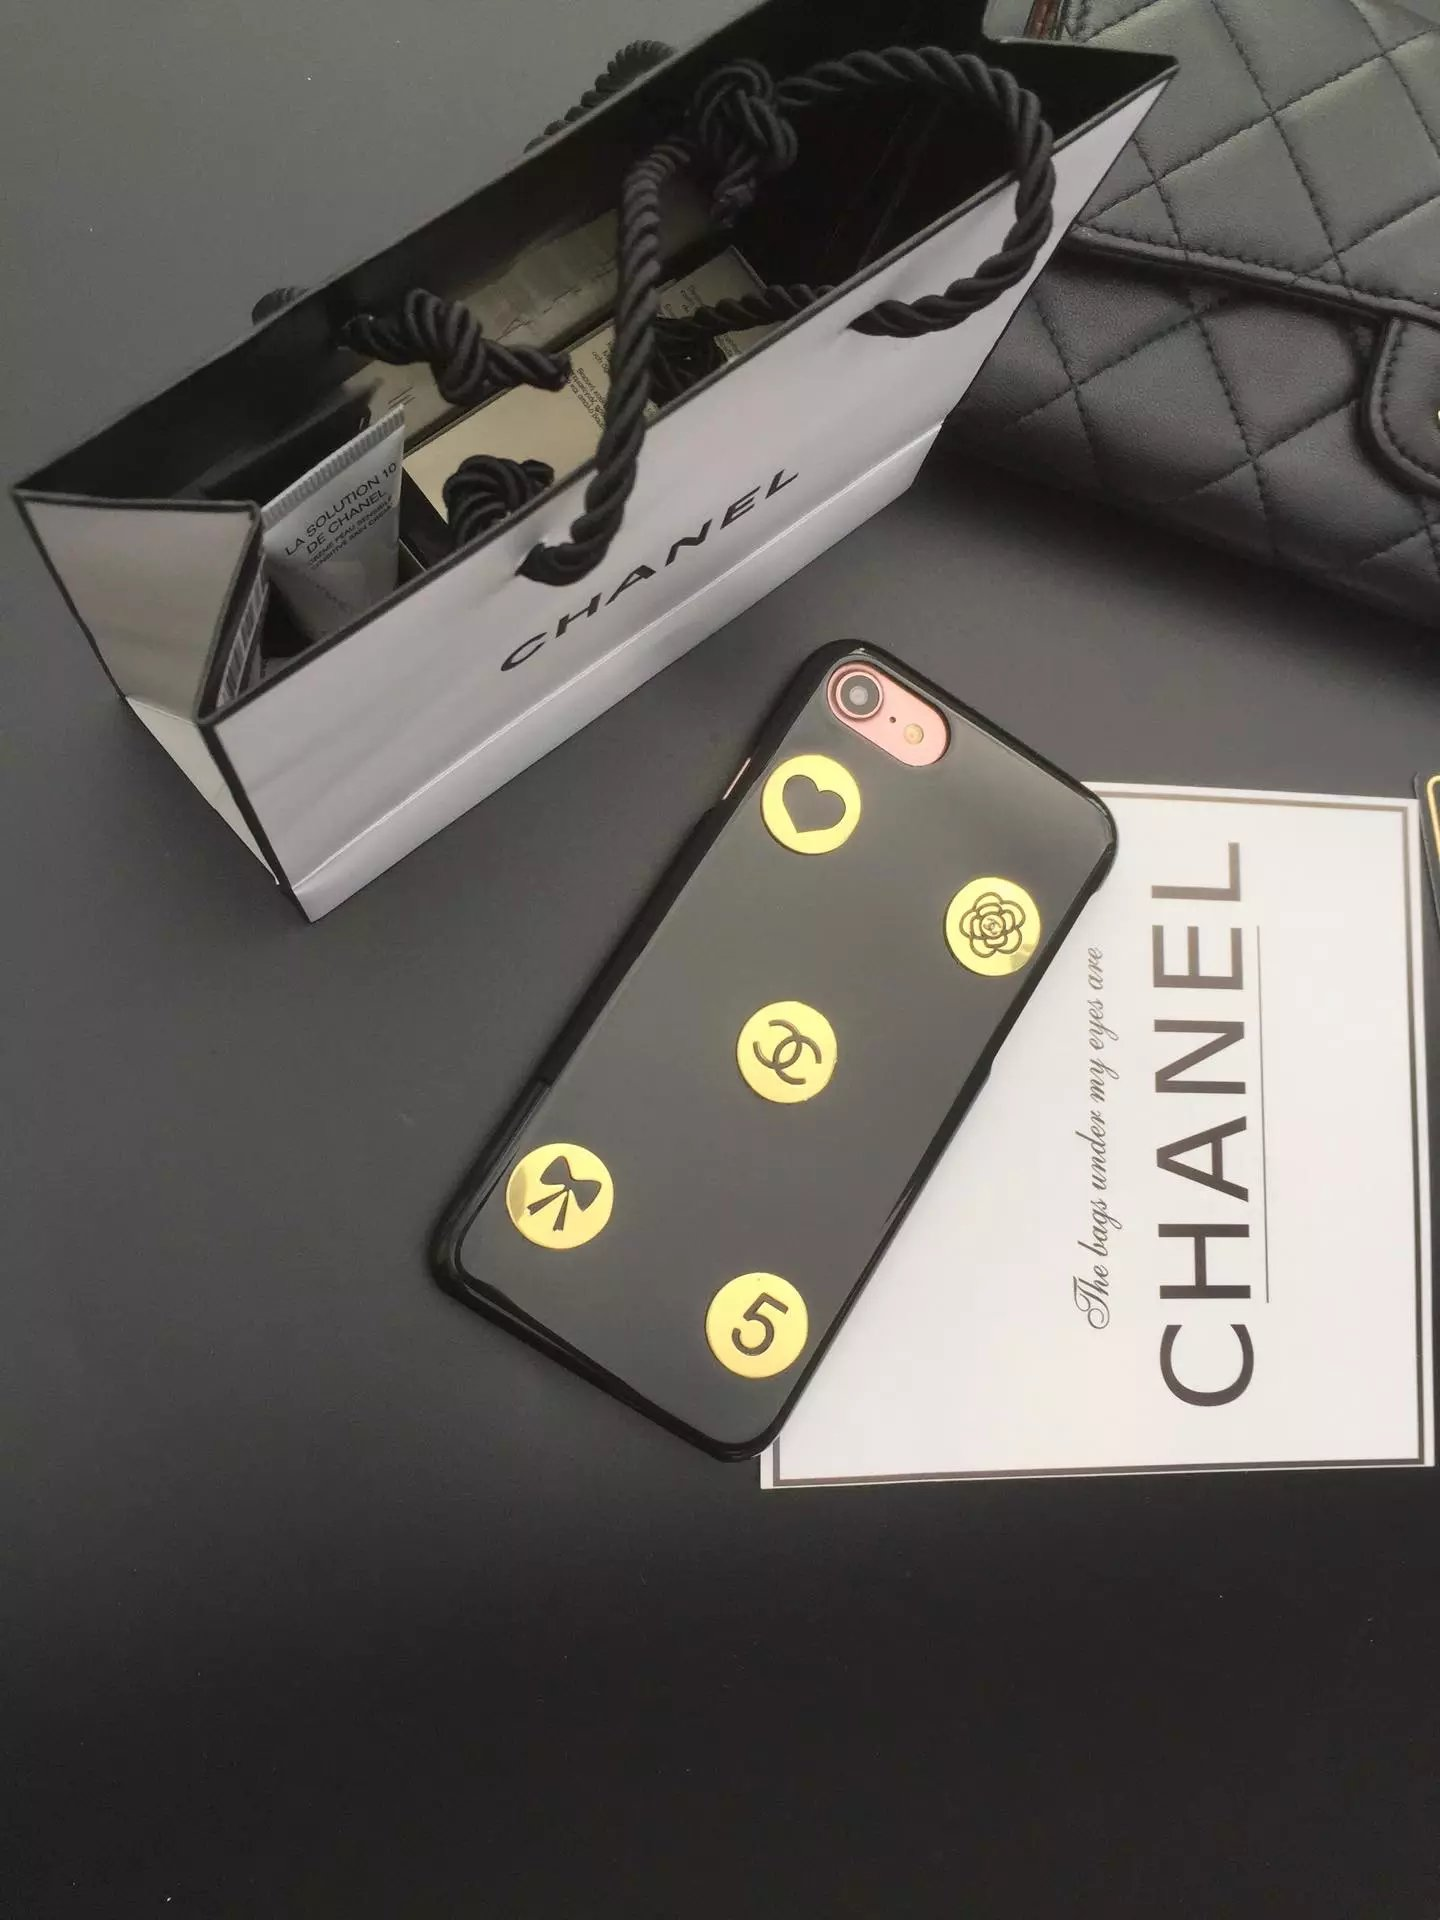 nice iphone 8 Plus cases iphone 8 Plus case maker Chanel iphone 8 Plus case cell phone case design your own phone jacket coolest iphone 8 Plus cases mobile cover sites custom iphone skins iPhone 8 Plus black cover